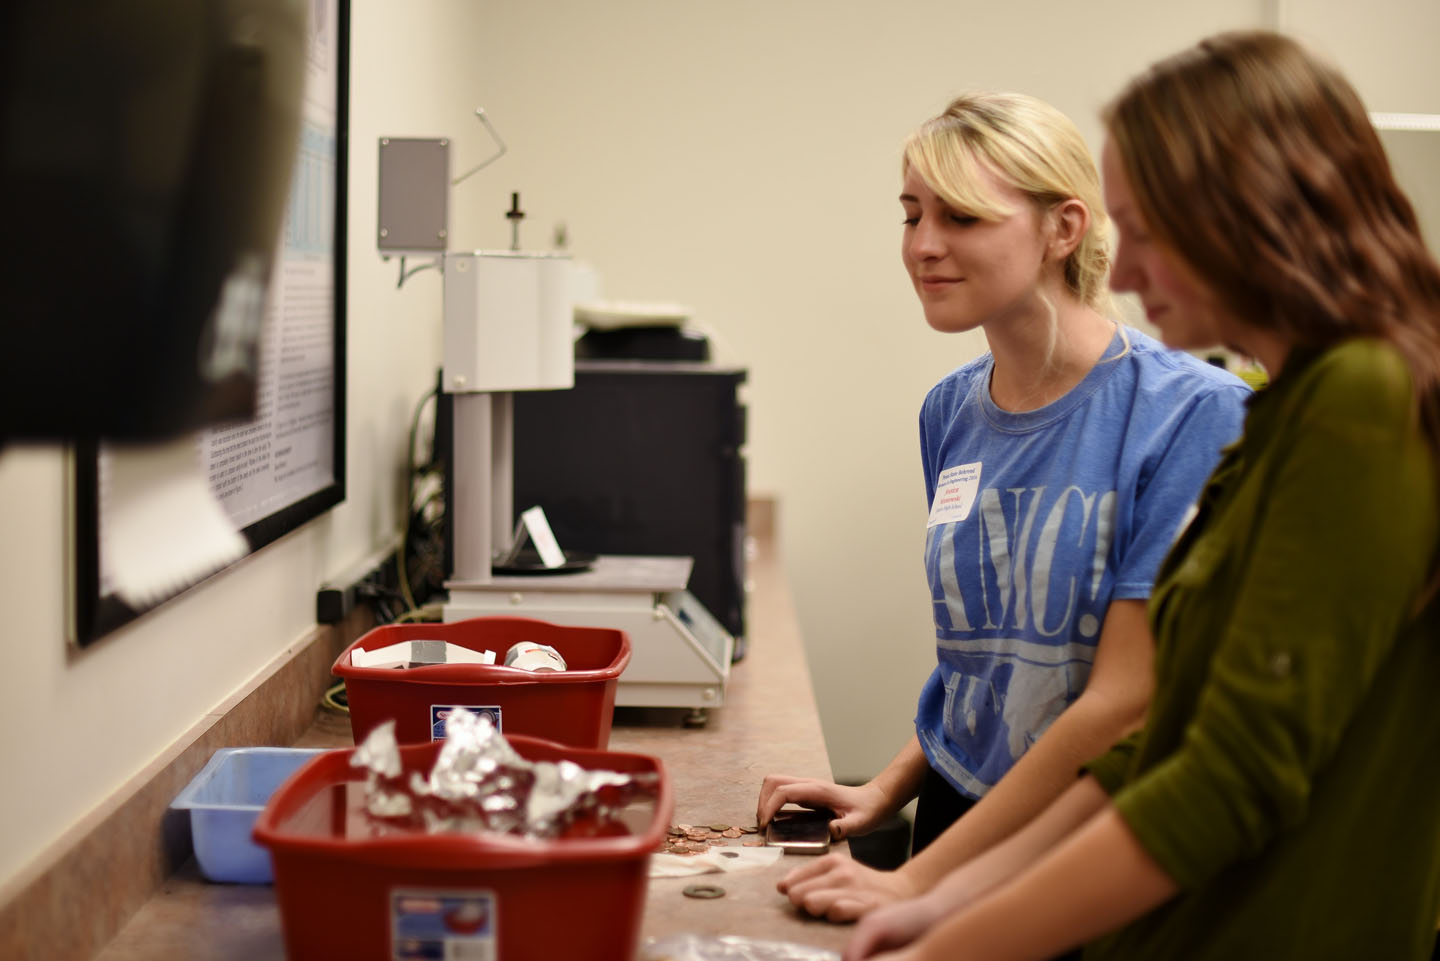 Two Women in Engineering students participate in an educational activity